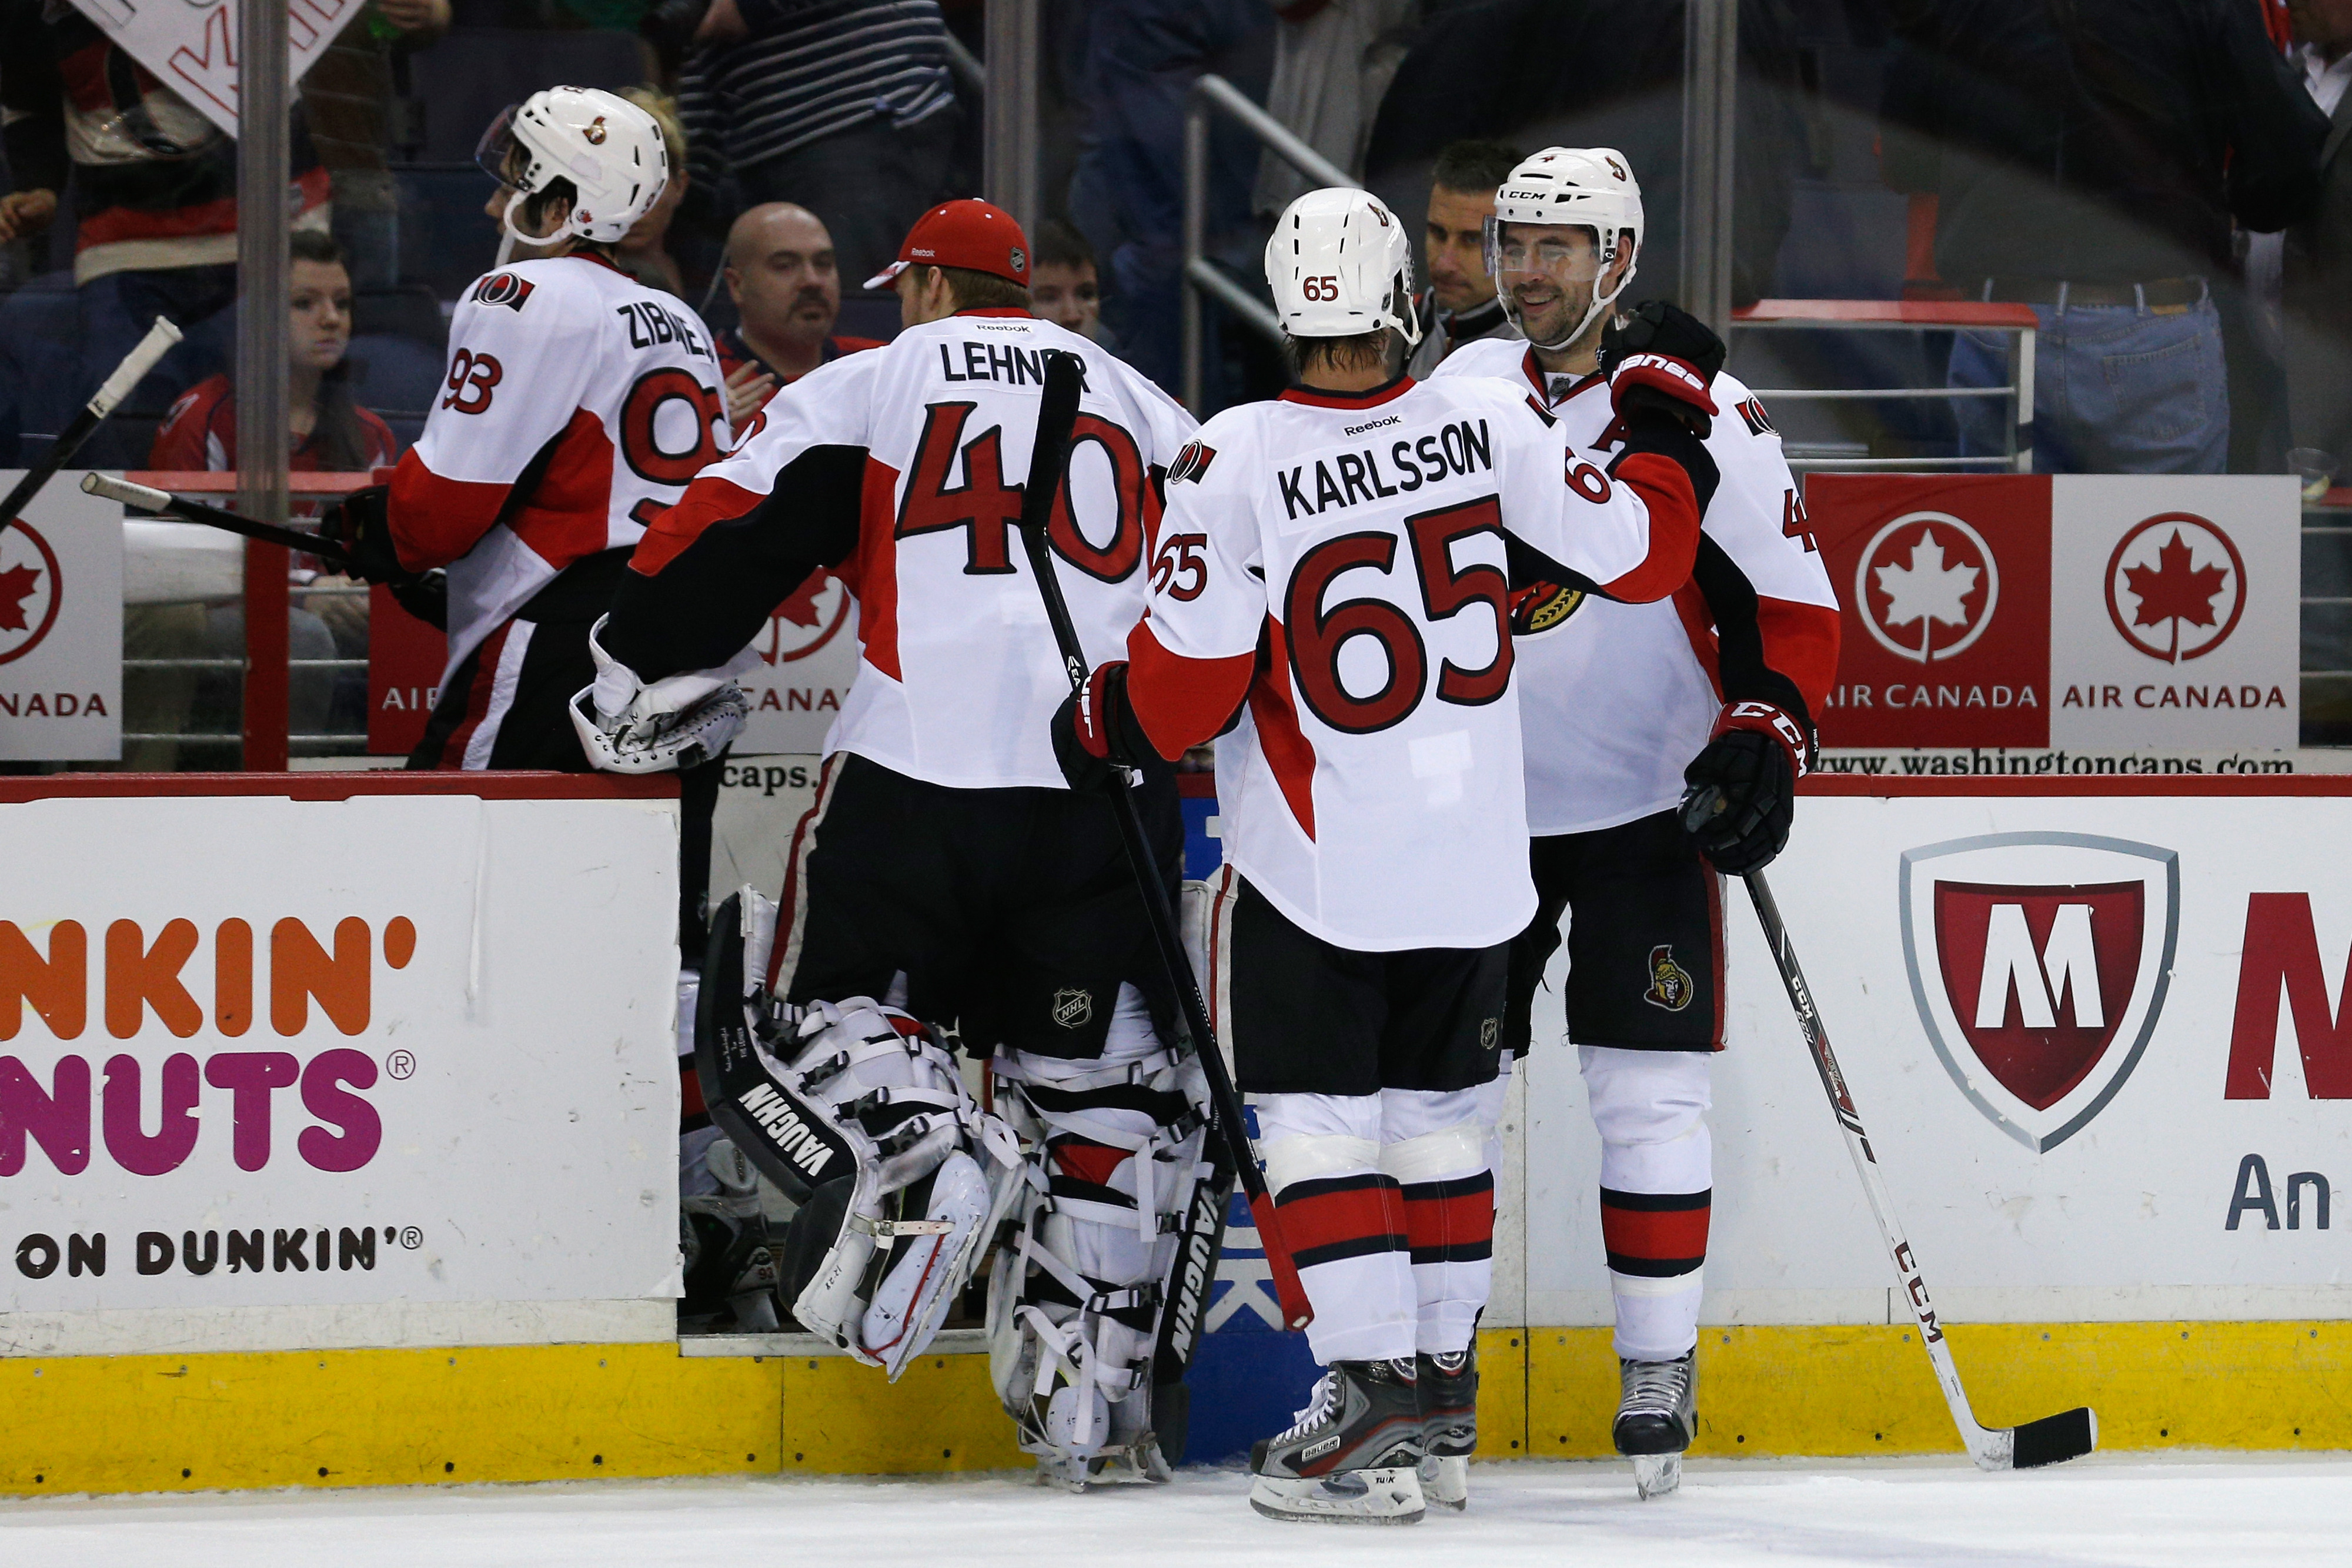 No one does the post-win fist bump like Chris Phillips.